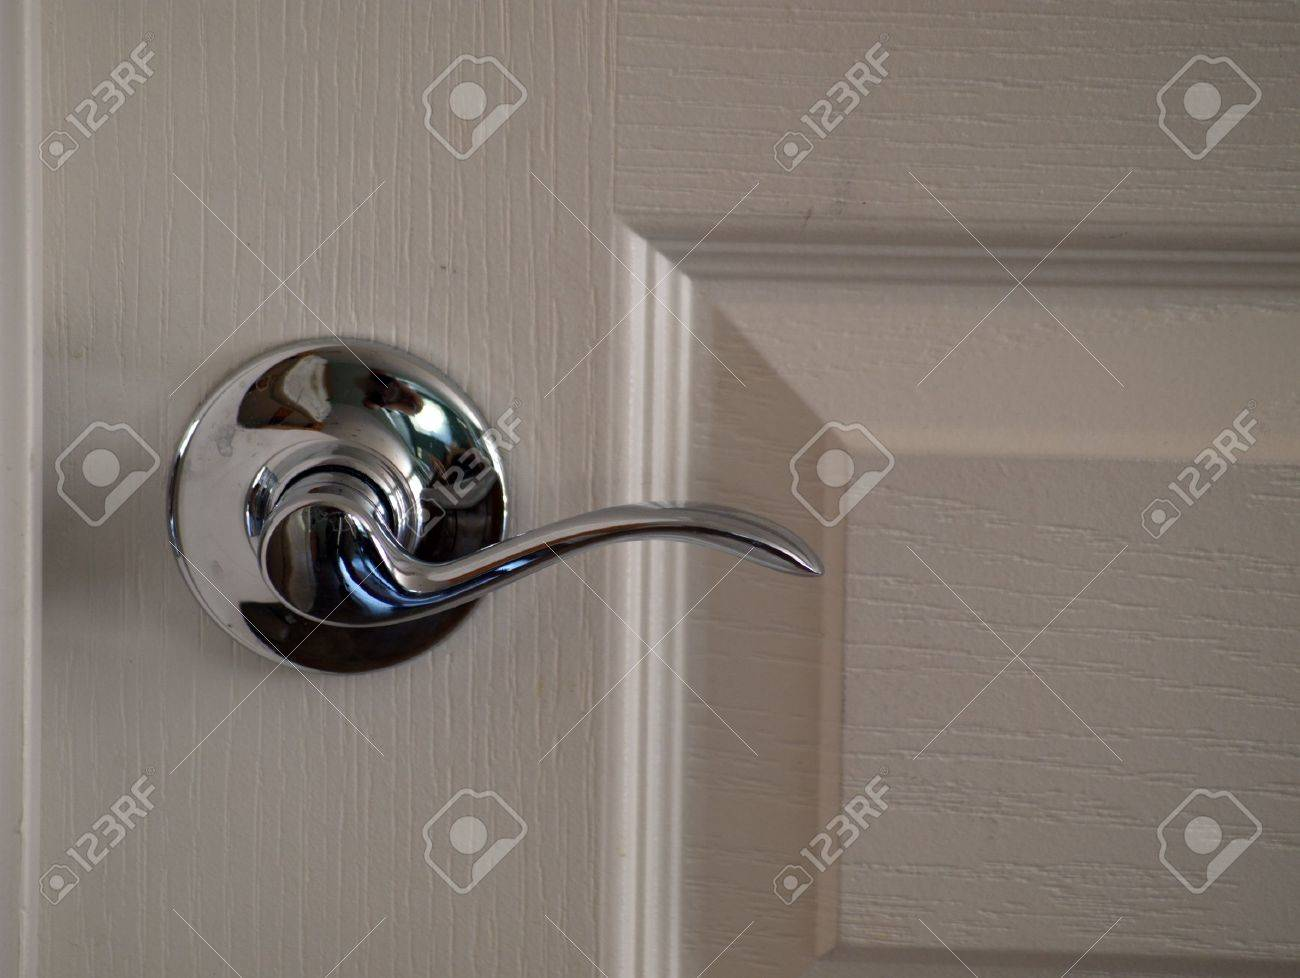 Inside Door Knob. Easy Open, Lever Shaped Latch Stock Photo, Picture ...